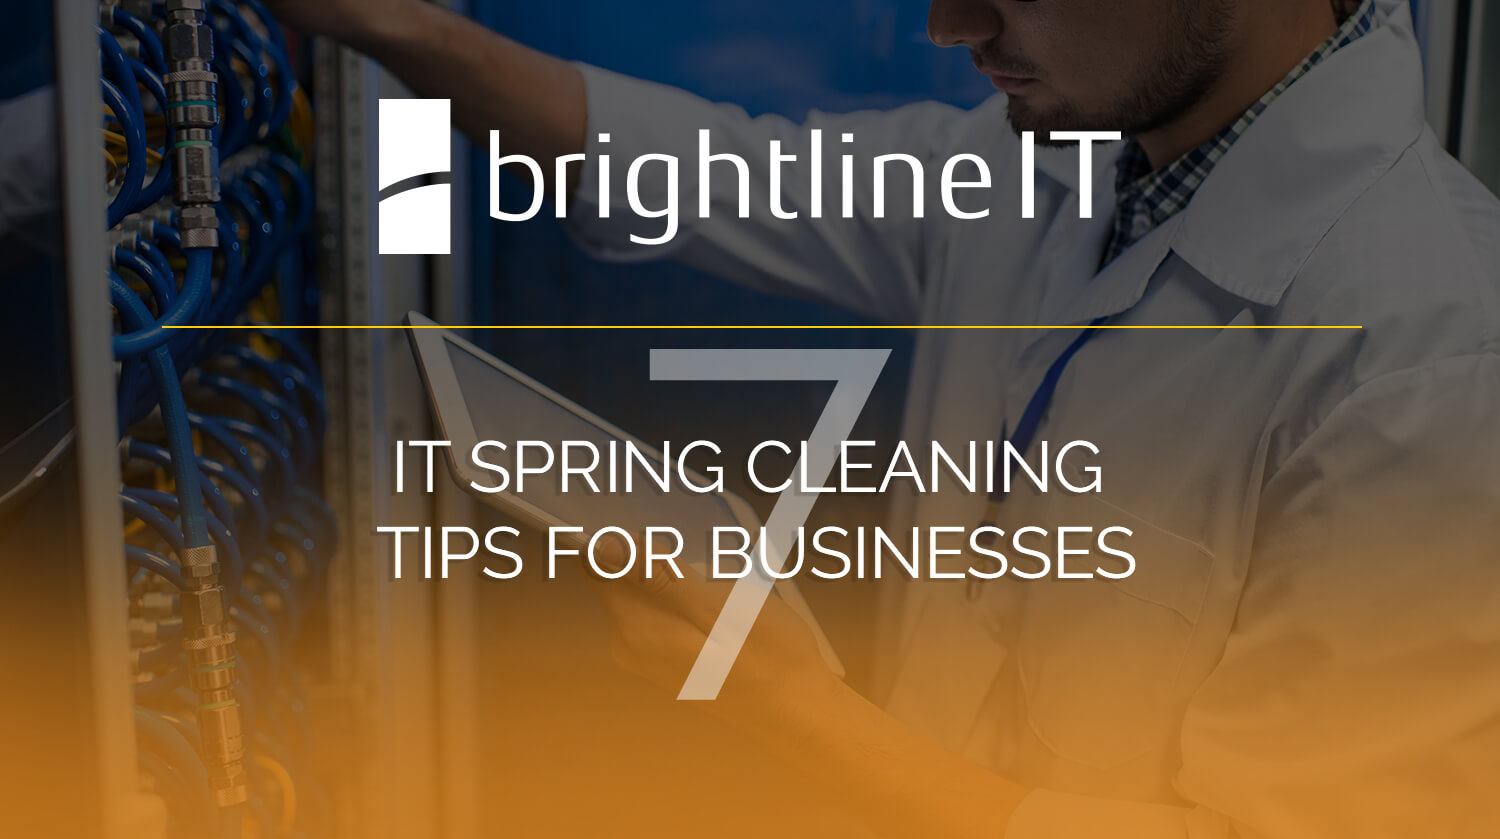 7 IT Spring Cleaning Tips for Businesses